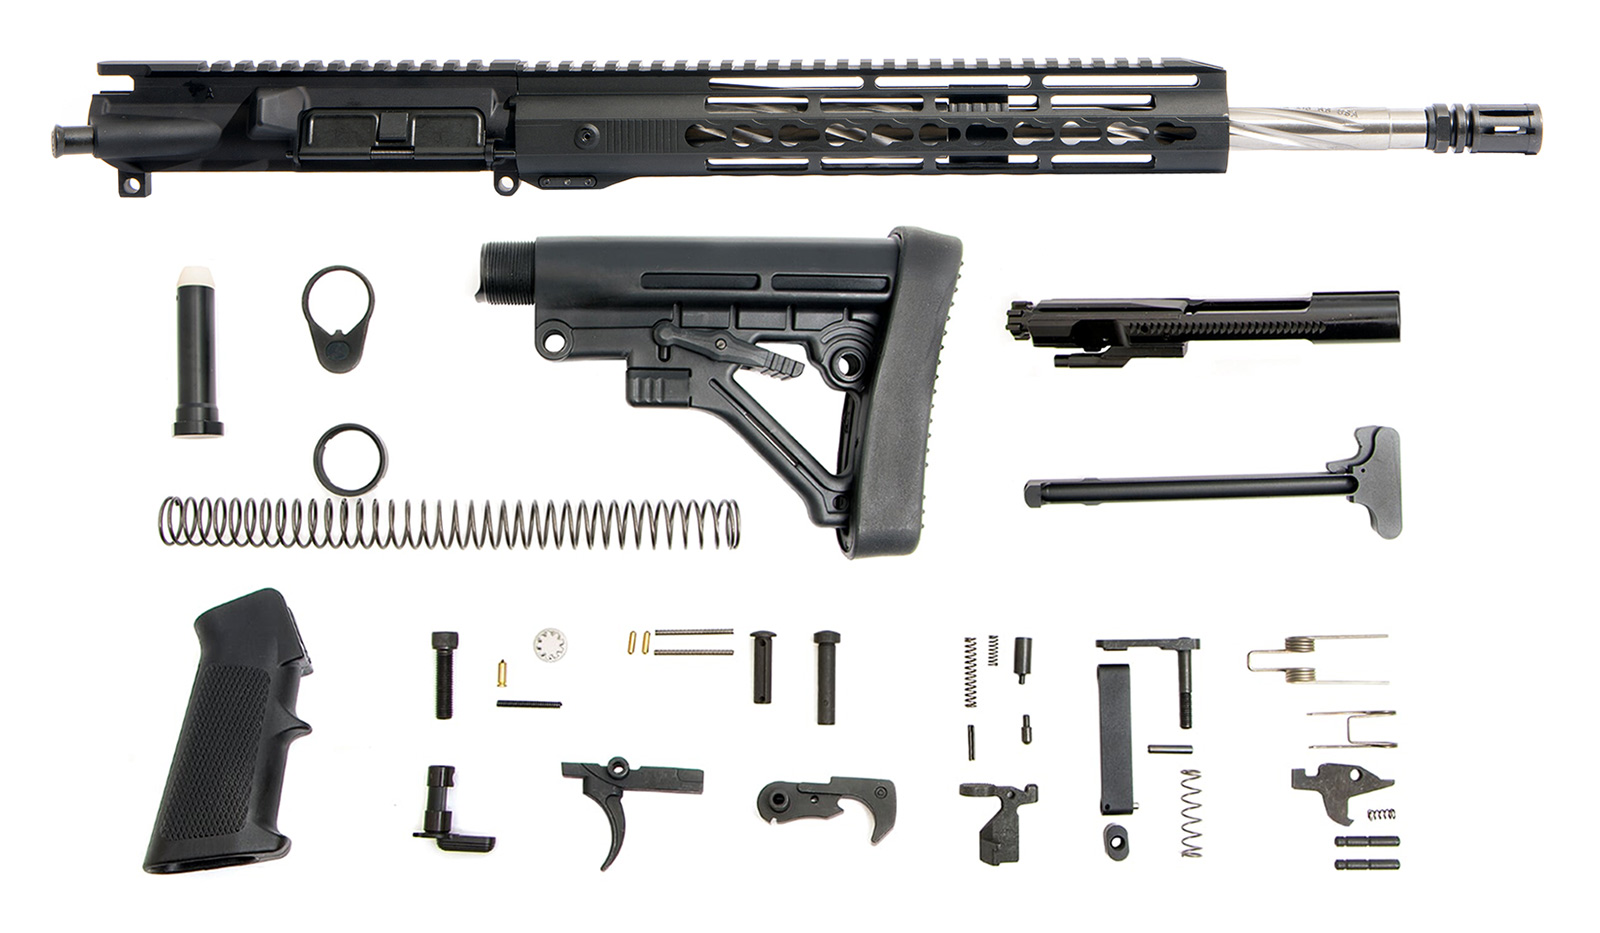 ar-15-rifle-kit-16-223-5-56-ss-spiral-13-cbc-g2-keymod-bolt-carrier-group-charging-handle-ar-15-buttstock-kit-ar-15-lower-parts-kit